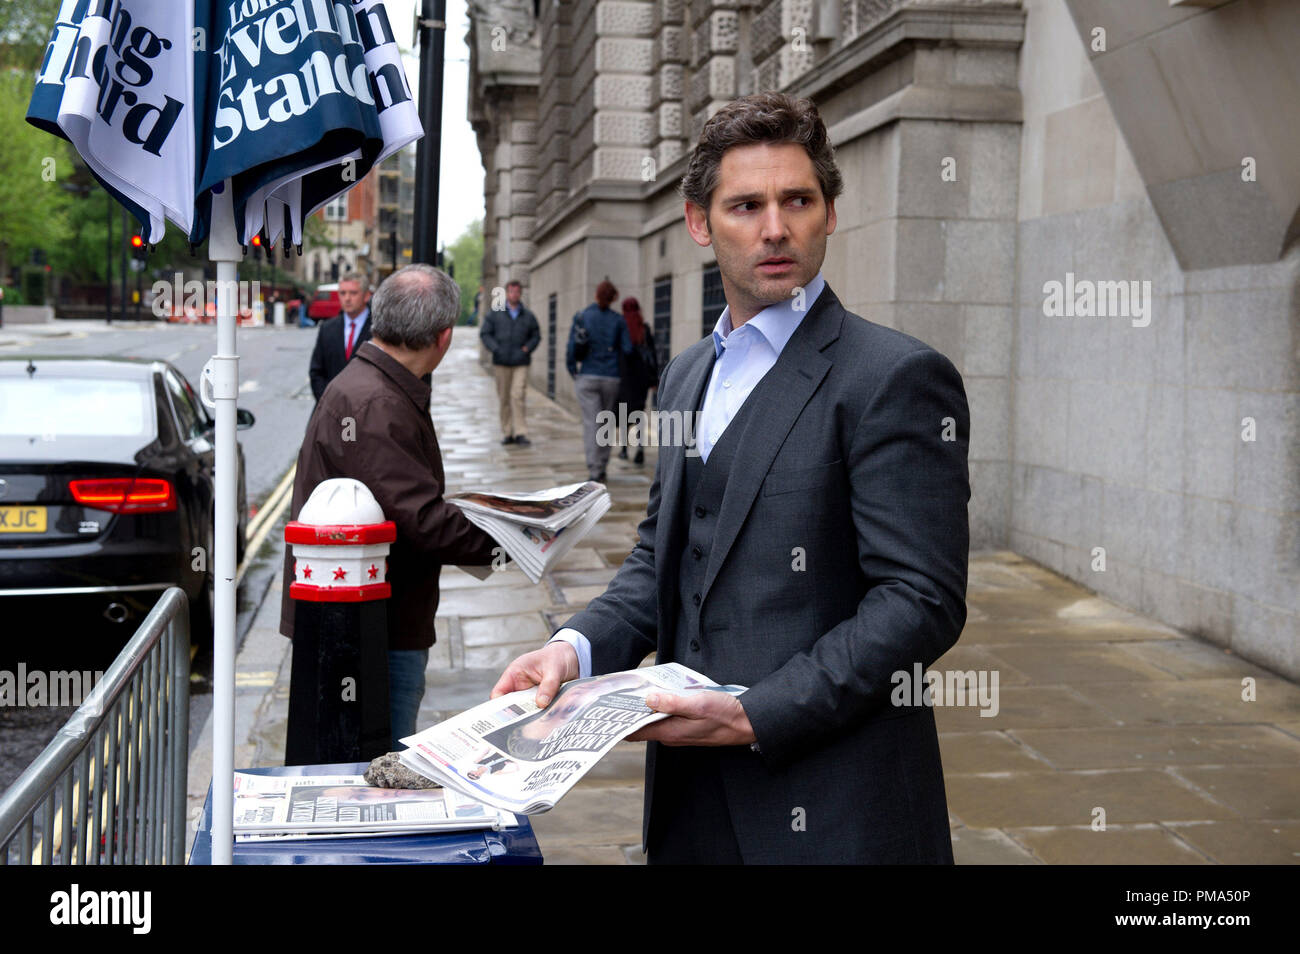 Eric Bana stars as Martin Rose in John Crowley's CLOSED CIRCUIT, a Focus Features release. - Stock Image